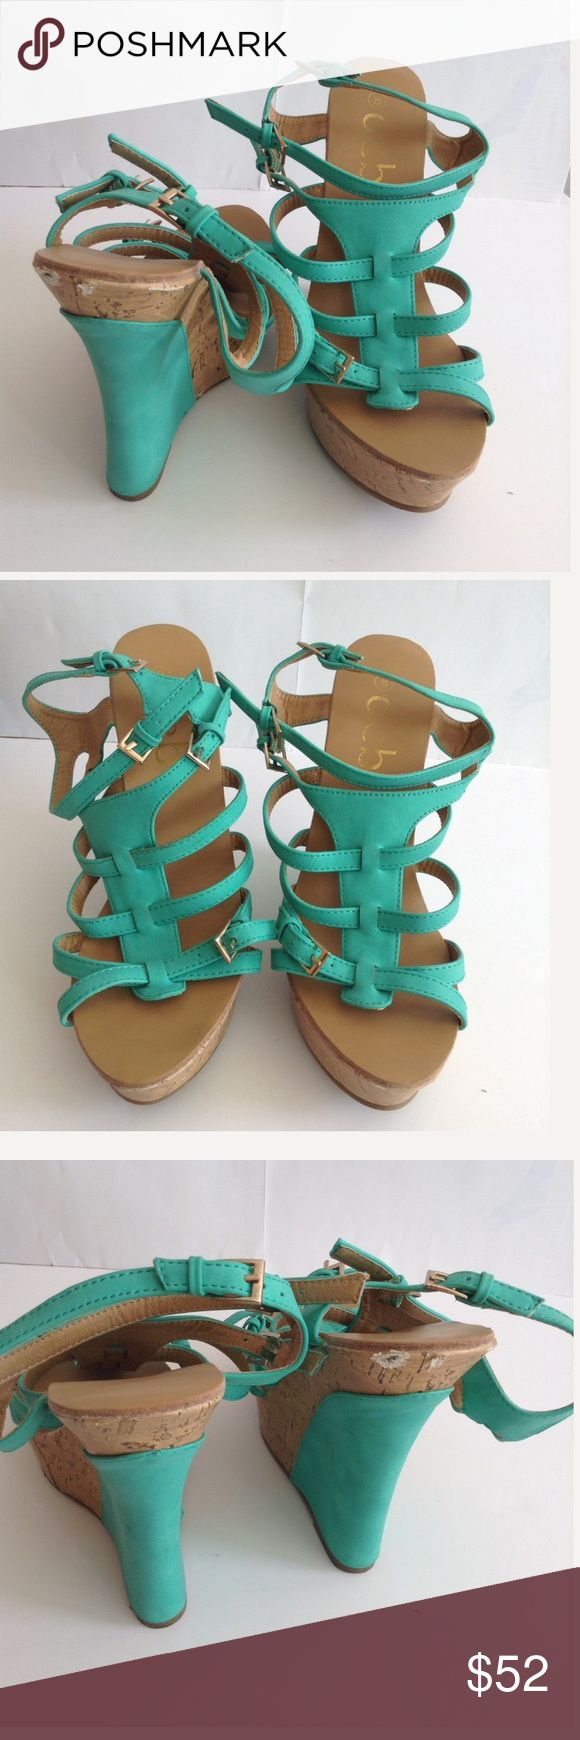 Summer Statement Turquoise Teal Sandal Wedges These wedges are your must have summer statement. They are 5inch Teal Wedges. I Love these heels!!  Minor defects are not too noticeable when wearing them. Tall dark turquois wedge heel shoes. Minor defects can be viewed in the pictures. Deb Shoes Wedges